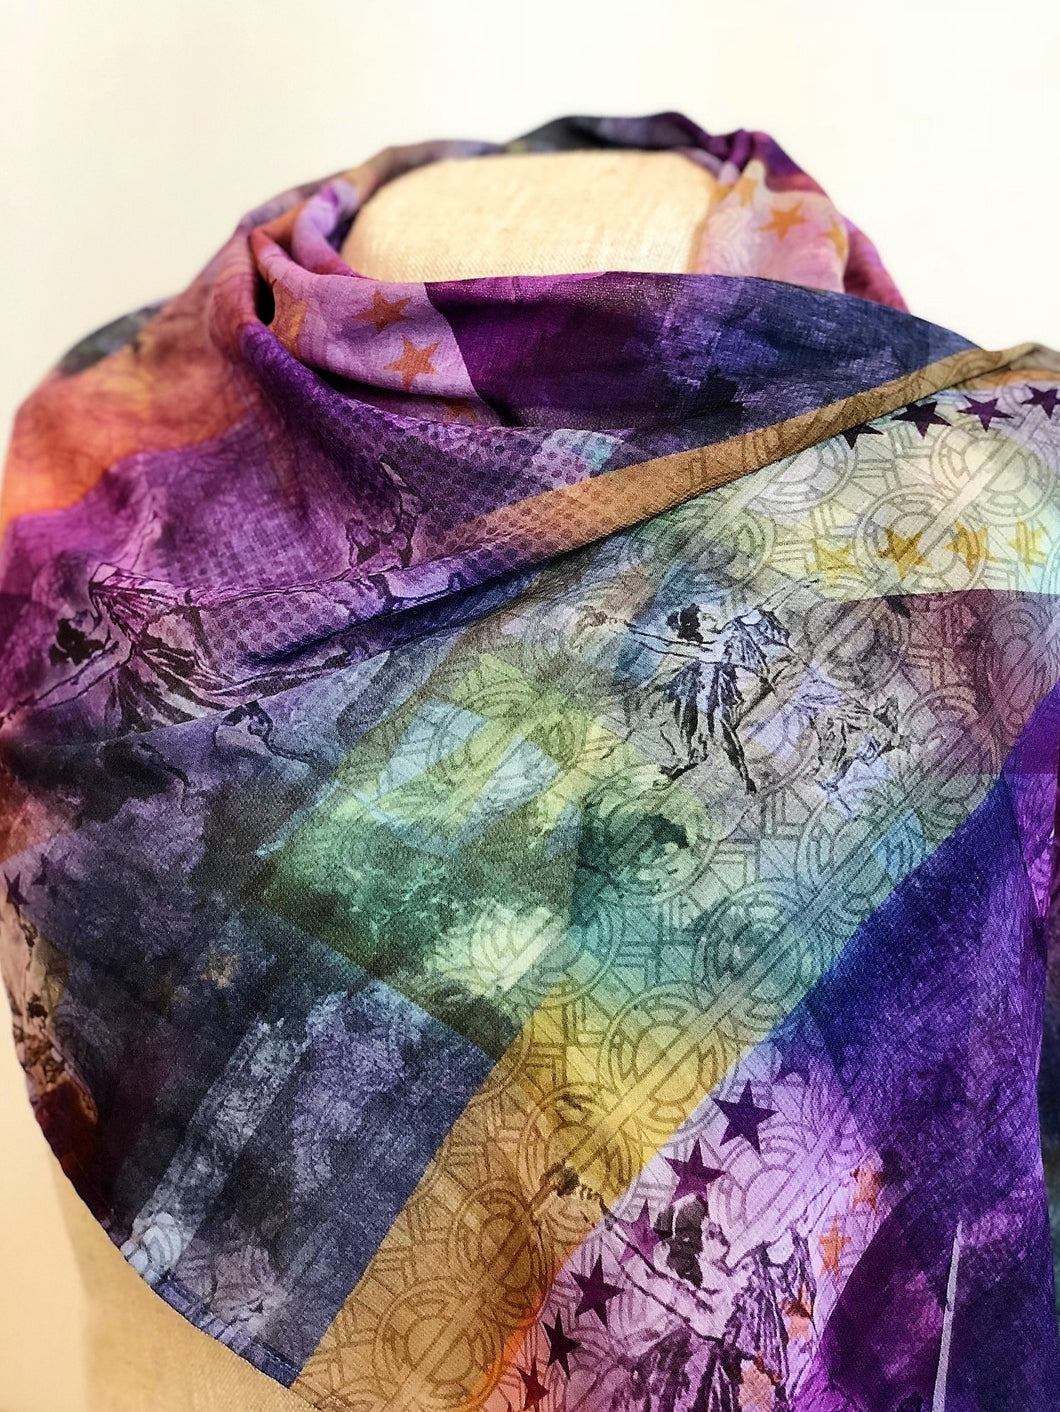 scarf wrapped around mannequin, colors of green, yellow, purple, and some white